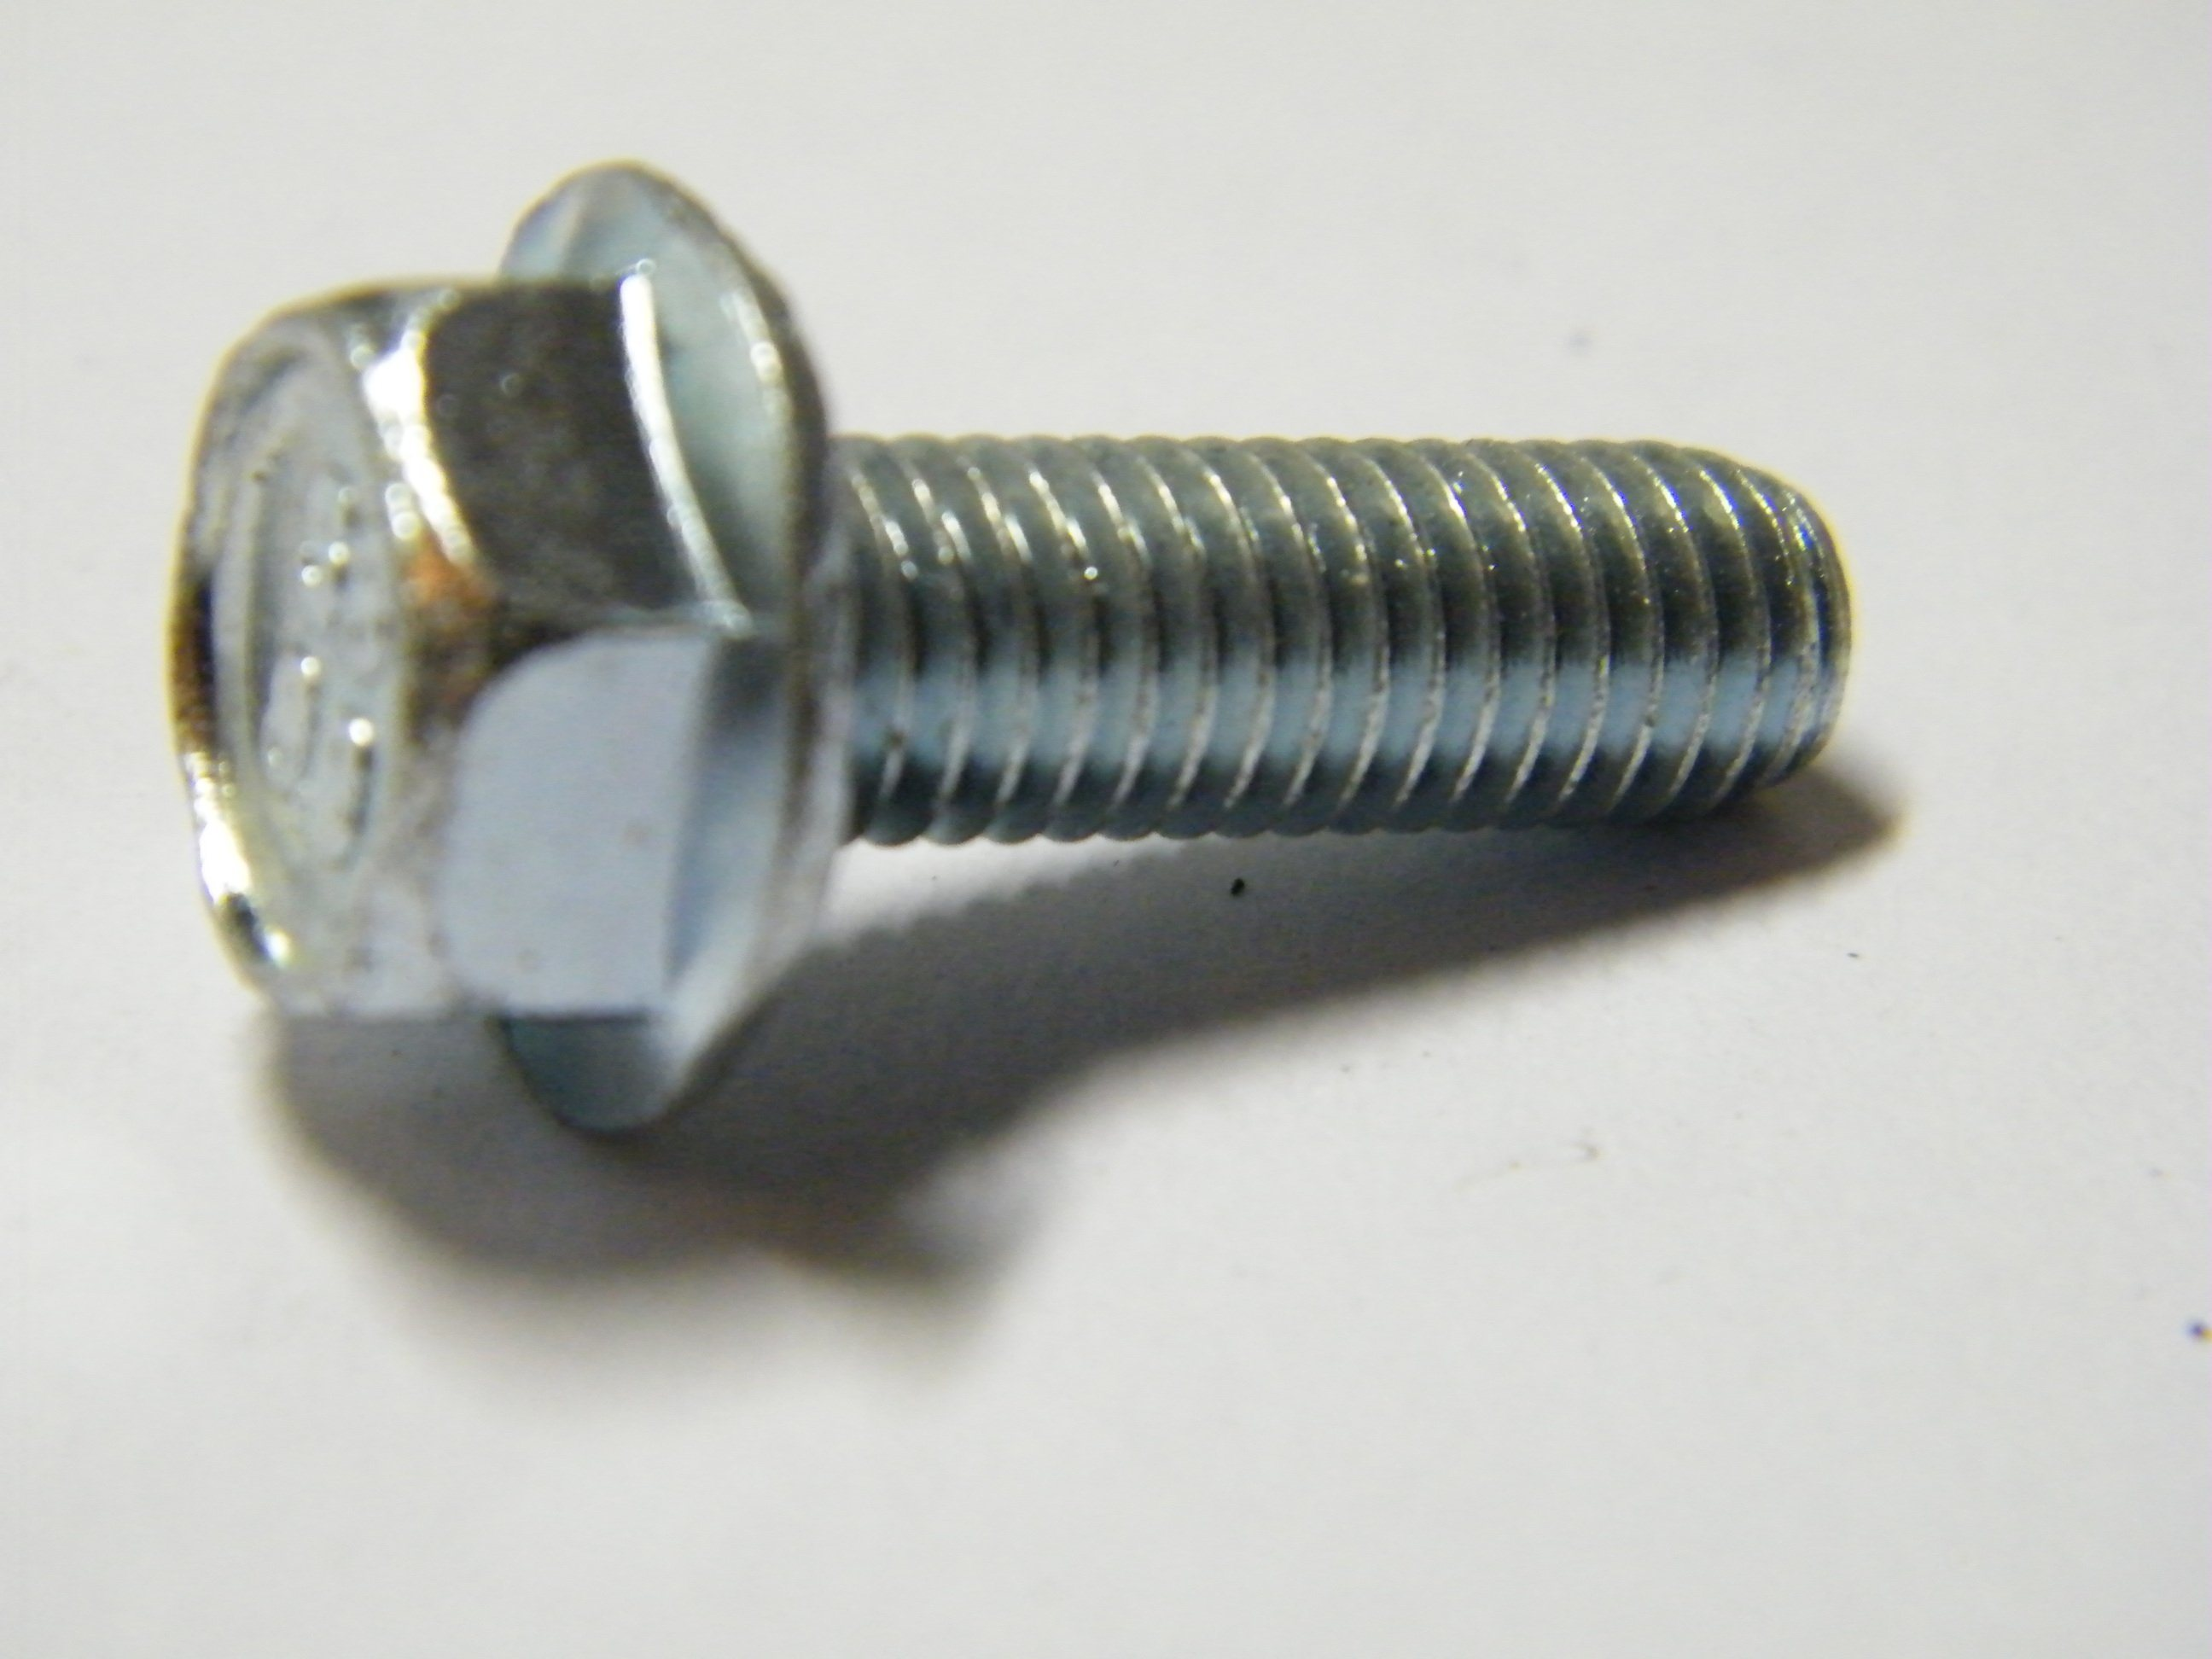 DIN6921 Carbon Steel 8.8 Yellow Zinc Plated Hex Flange Bolt